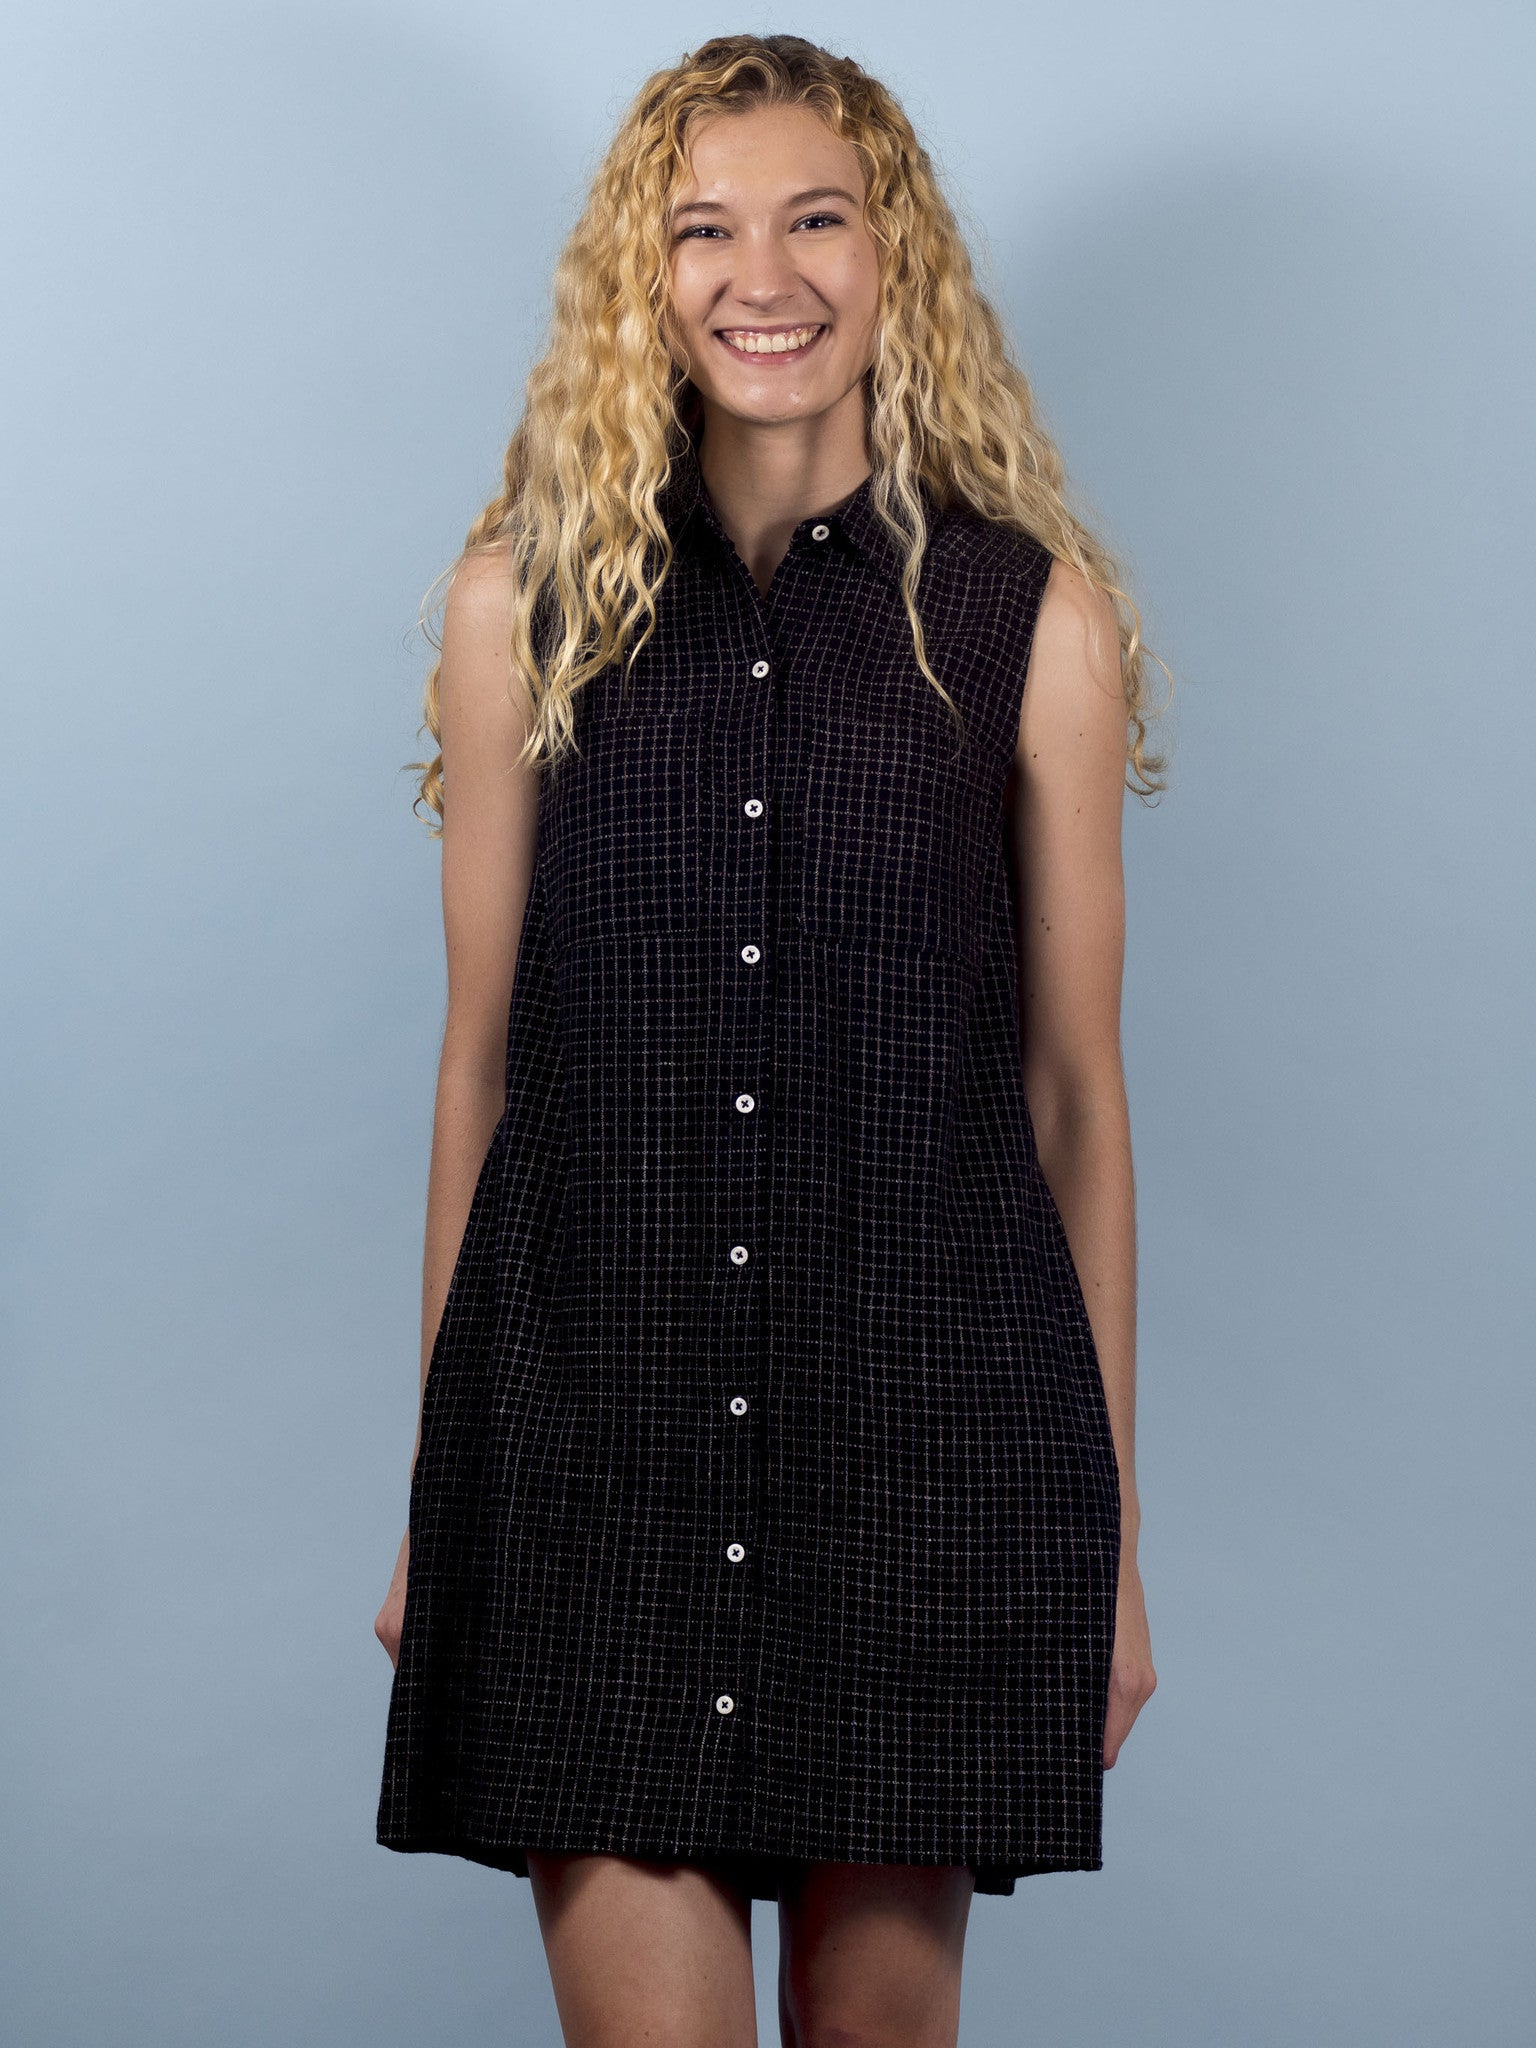 Juniper Dress in Black Grid